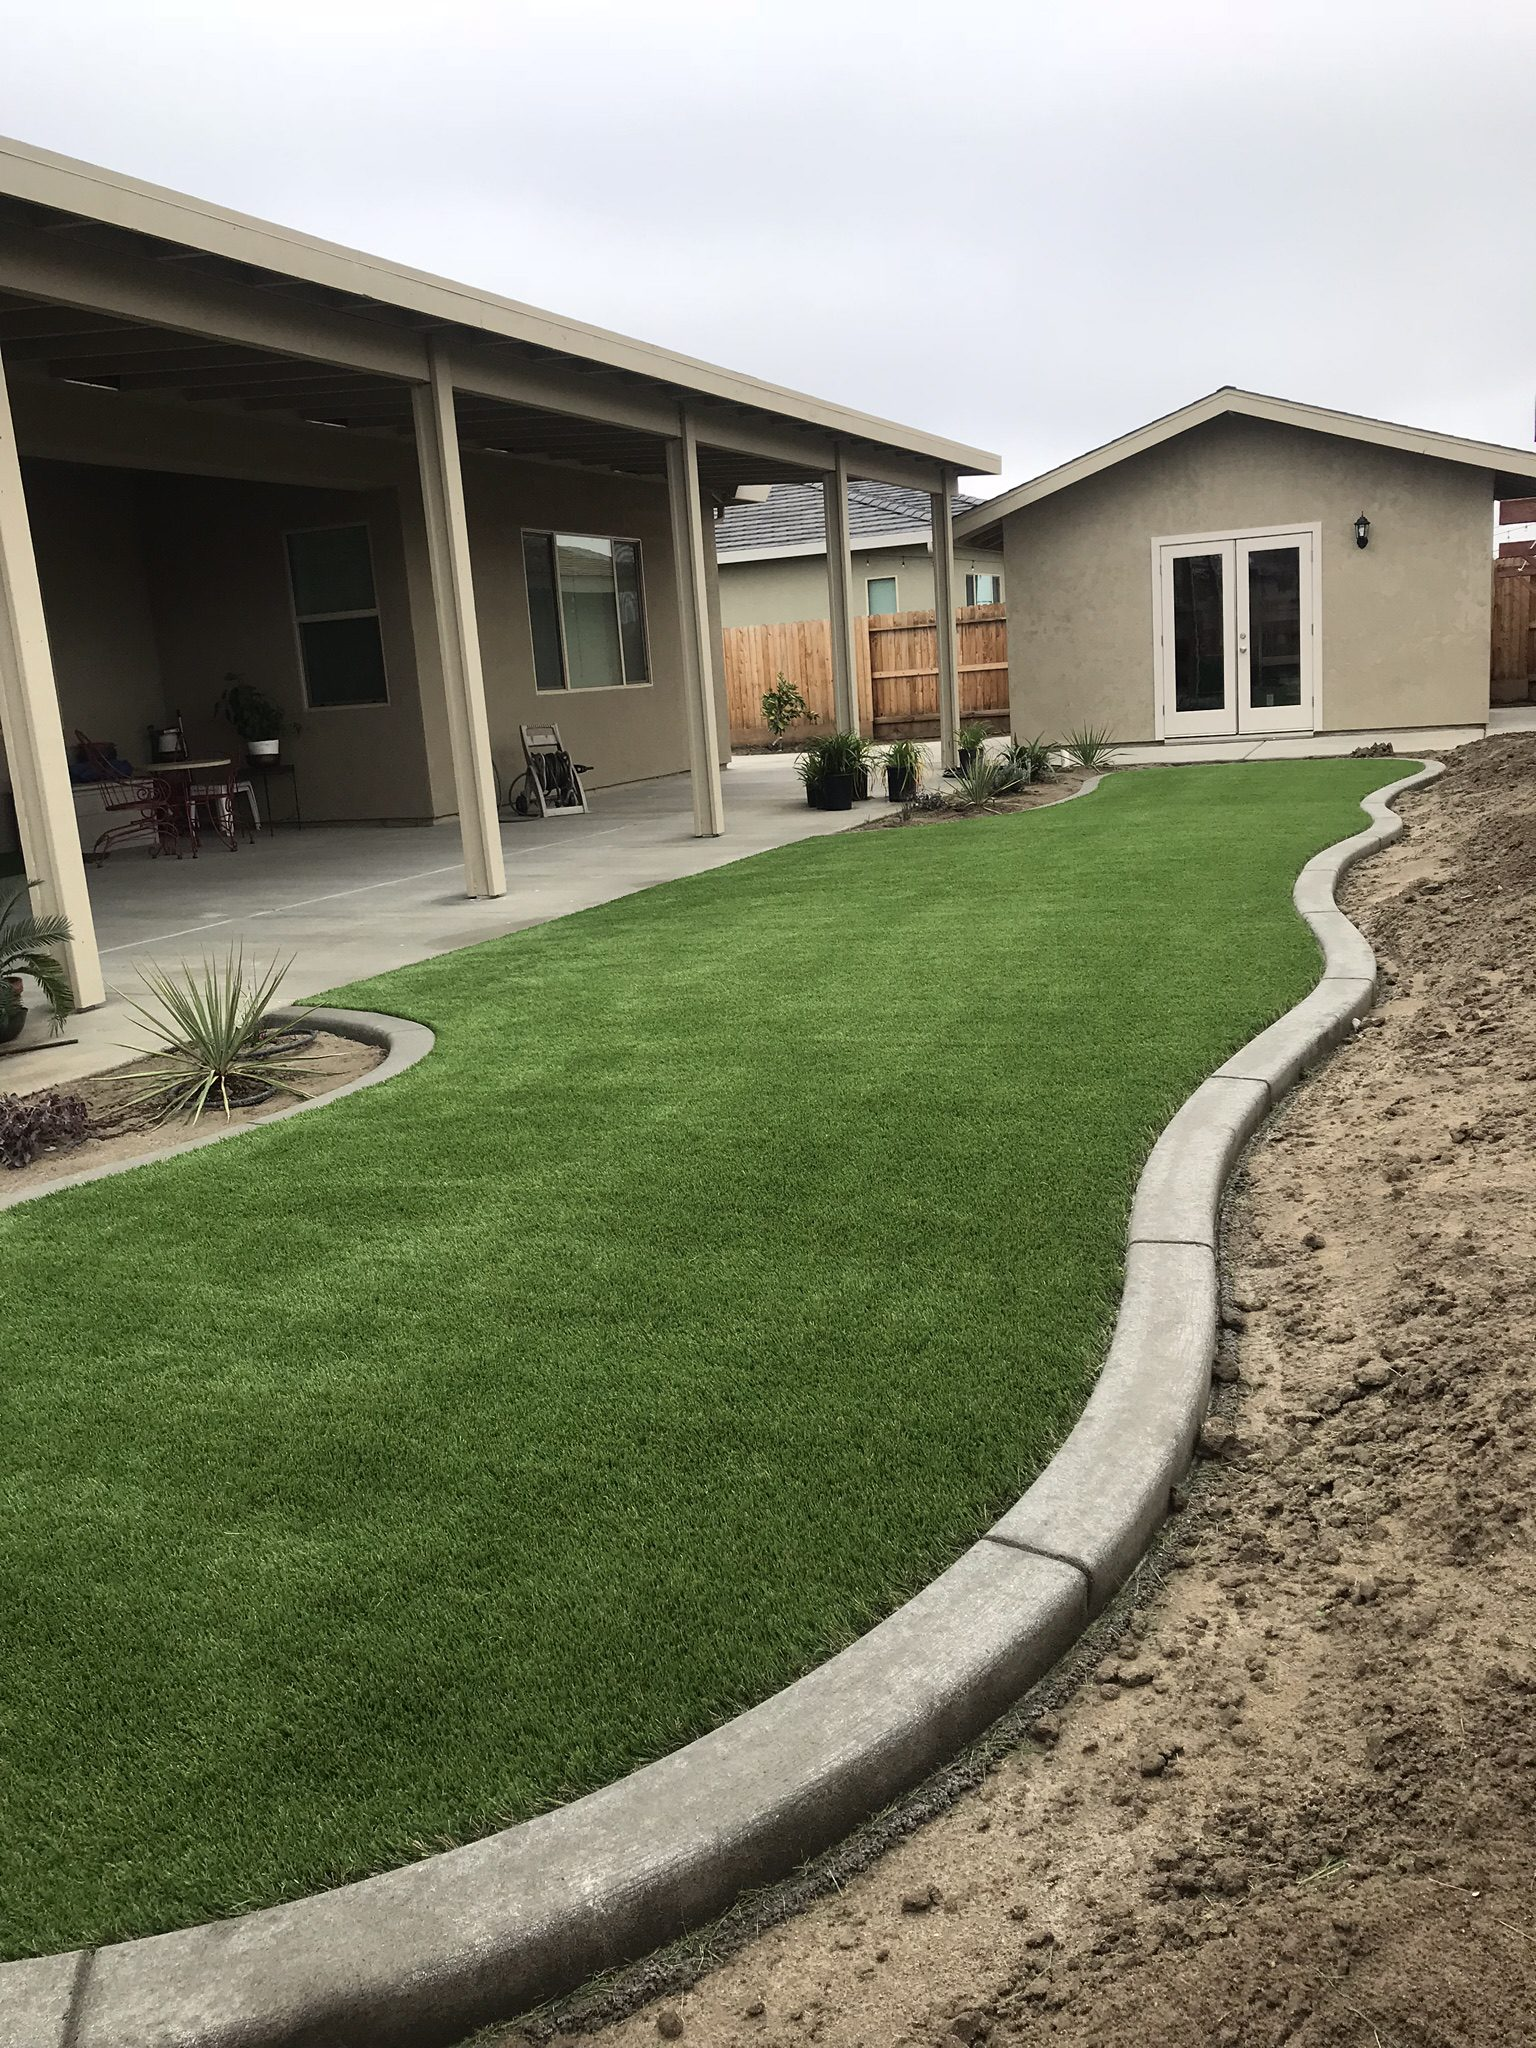 Backyard in Bakersfield with syn grass